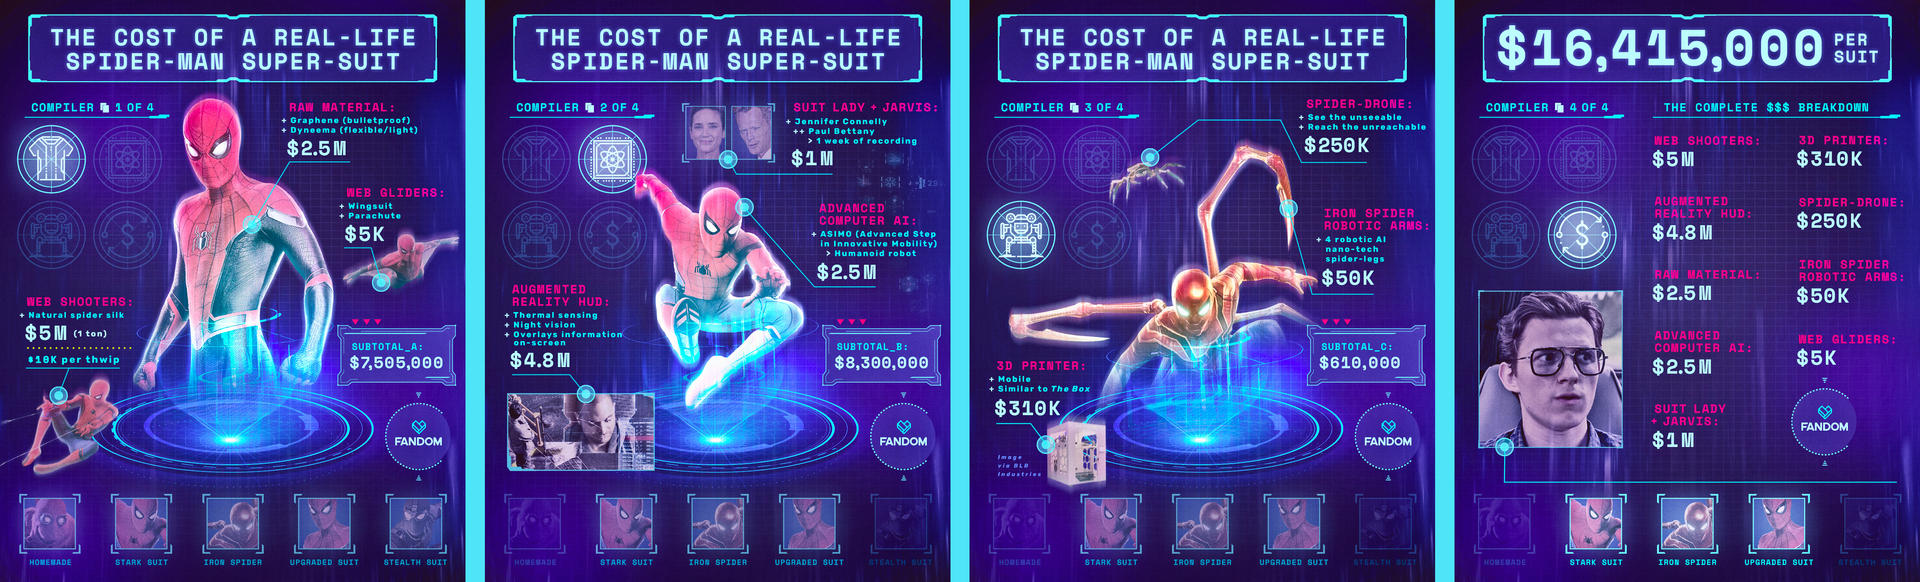 The Cost of a Real-Life Spider-Man Super-Suit